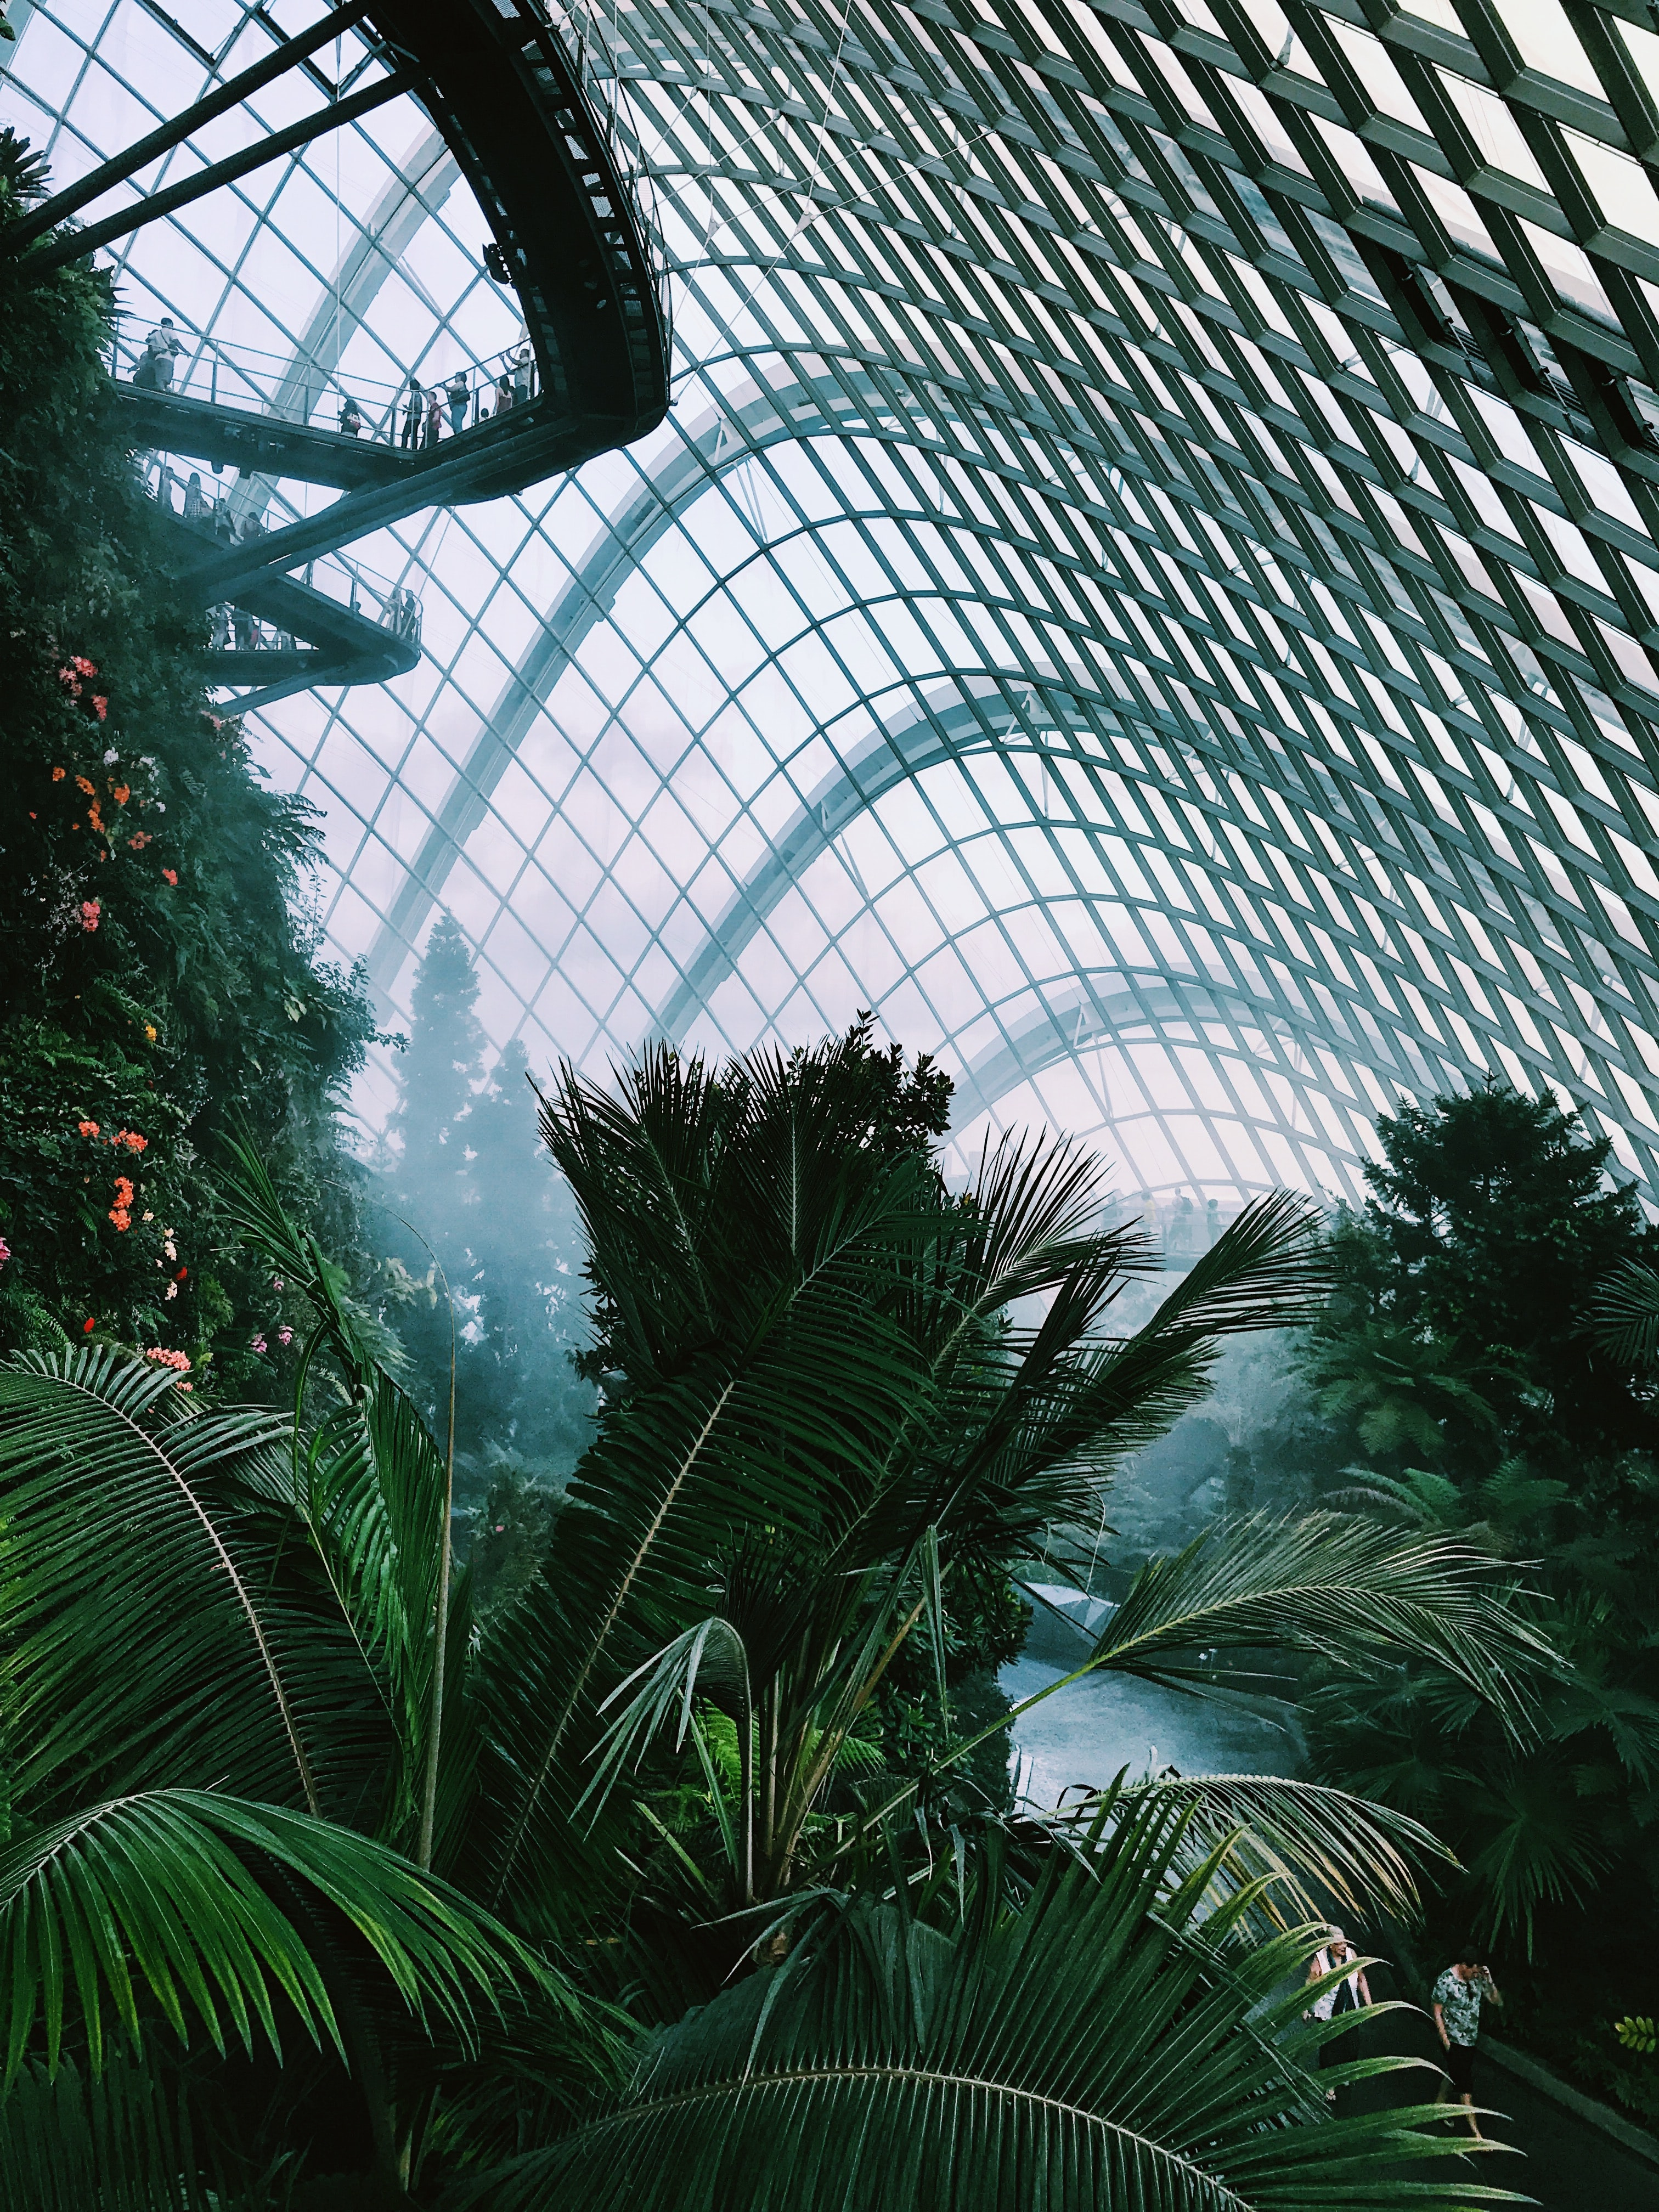 photo of coconut tree inside clear glass dome